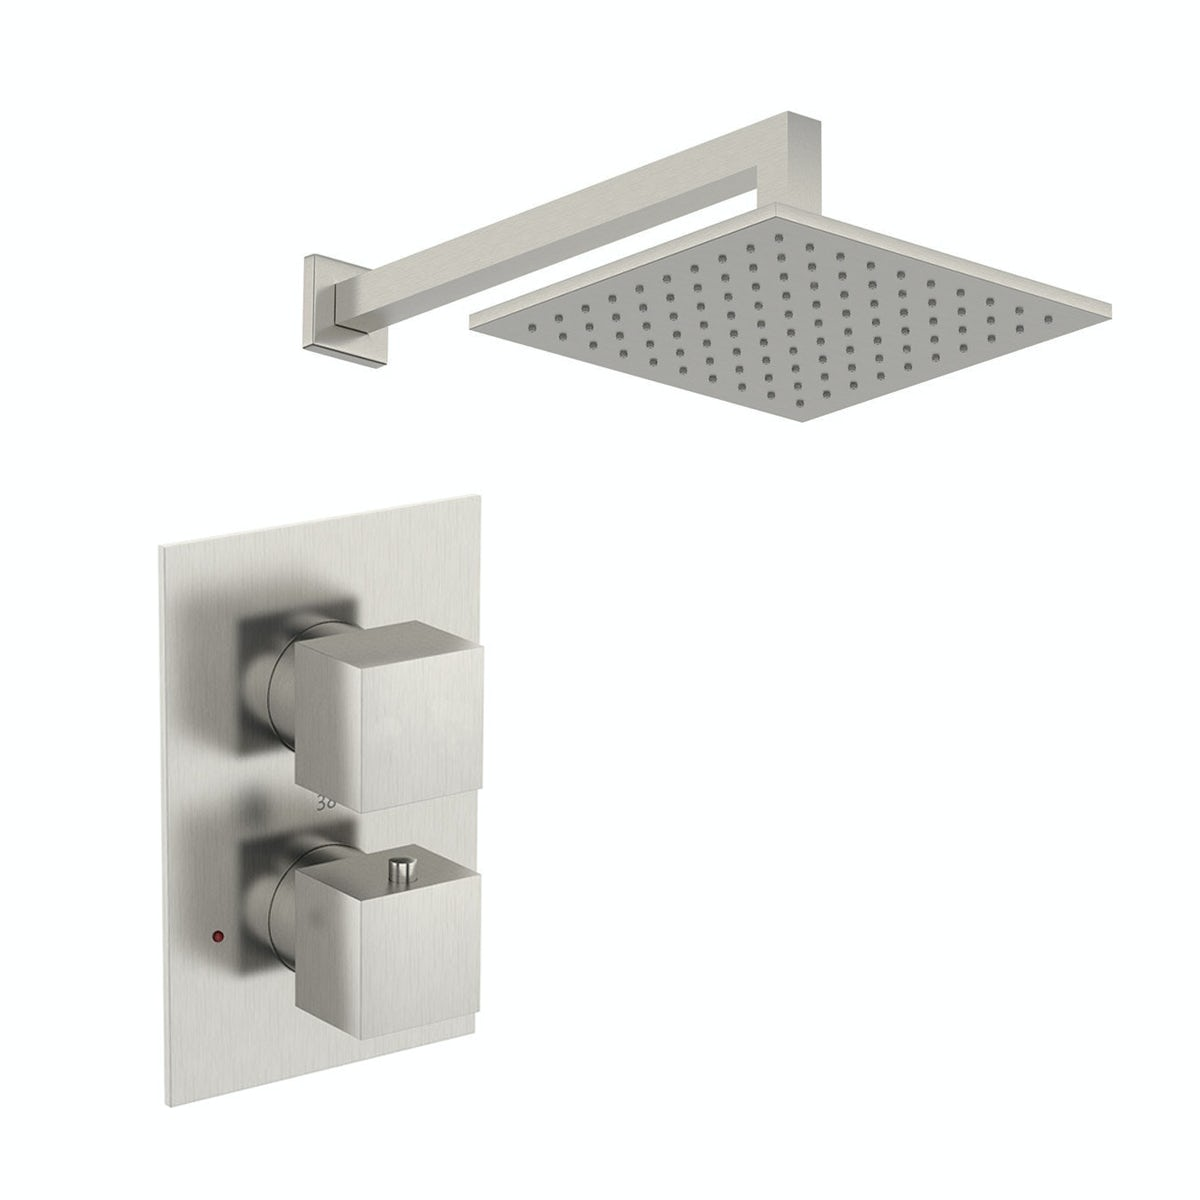 Mode Spencer square thermostatic twin valve brushed nickel shower set - 250 mm - 0.5 BAR - Sold by Victoria Plum